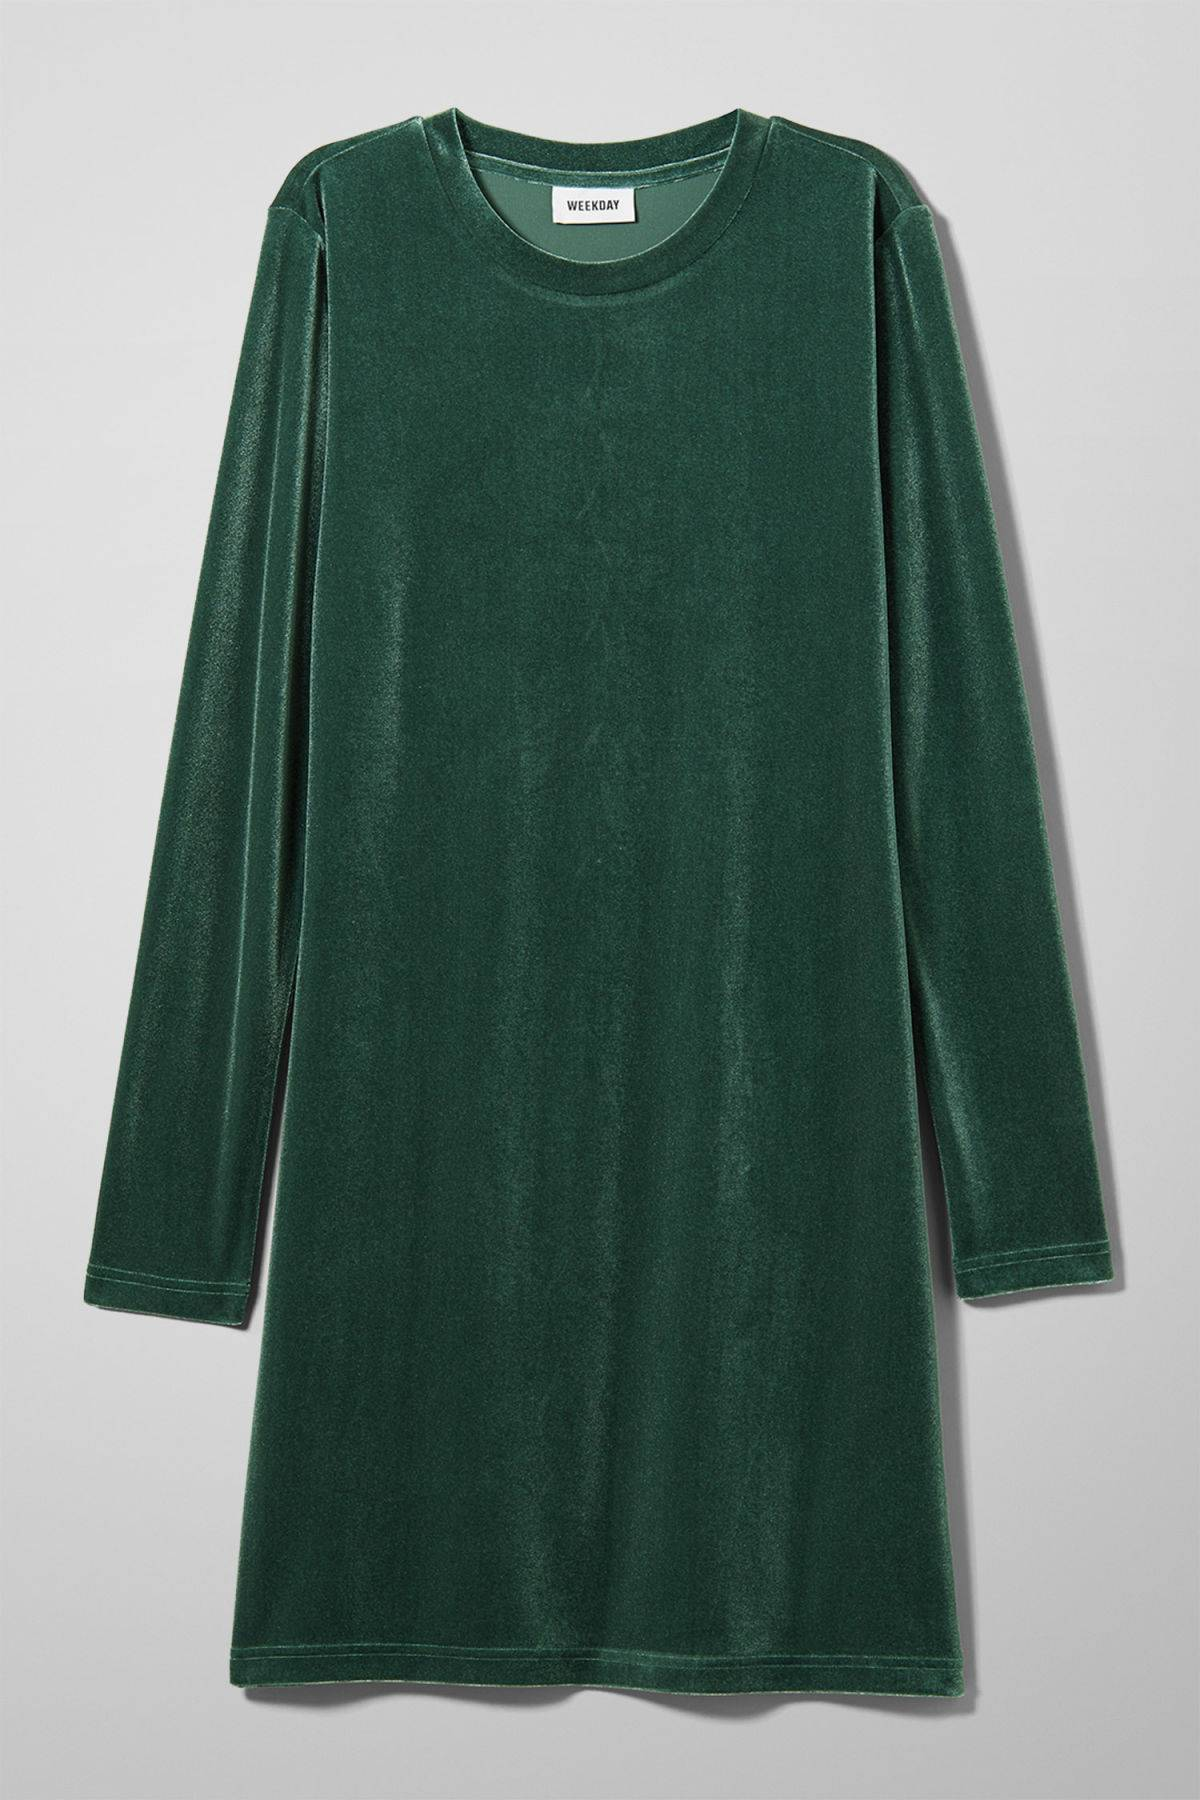 Image of Fray Dress - Green-XS